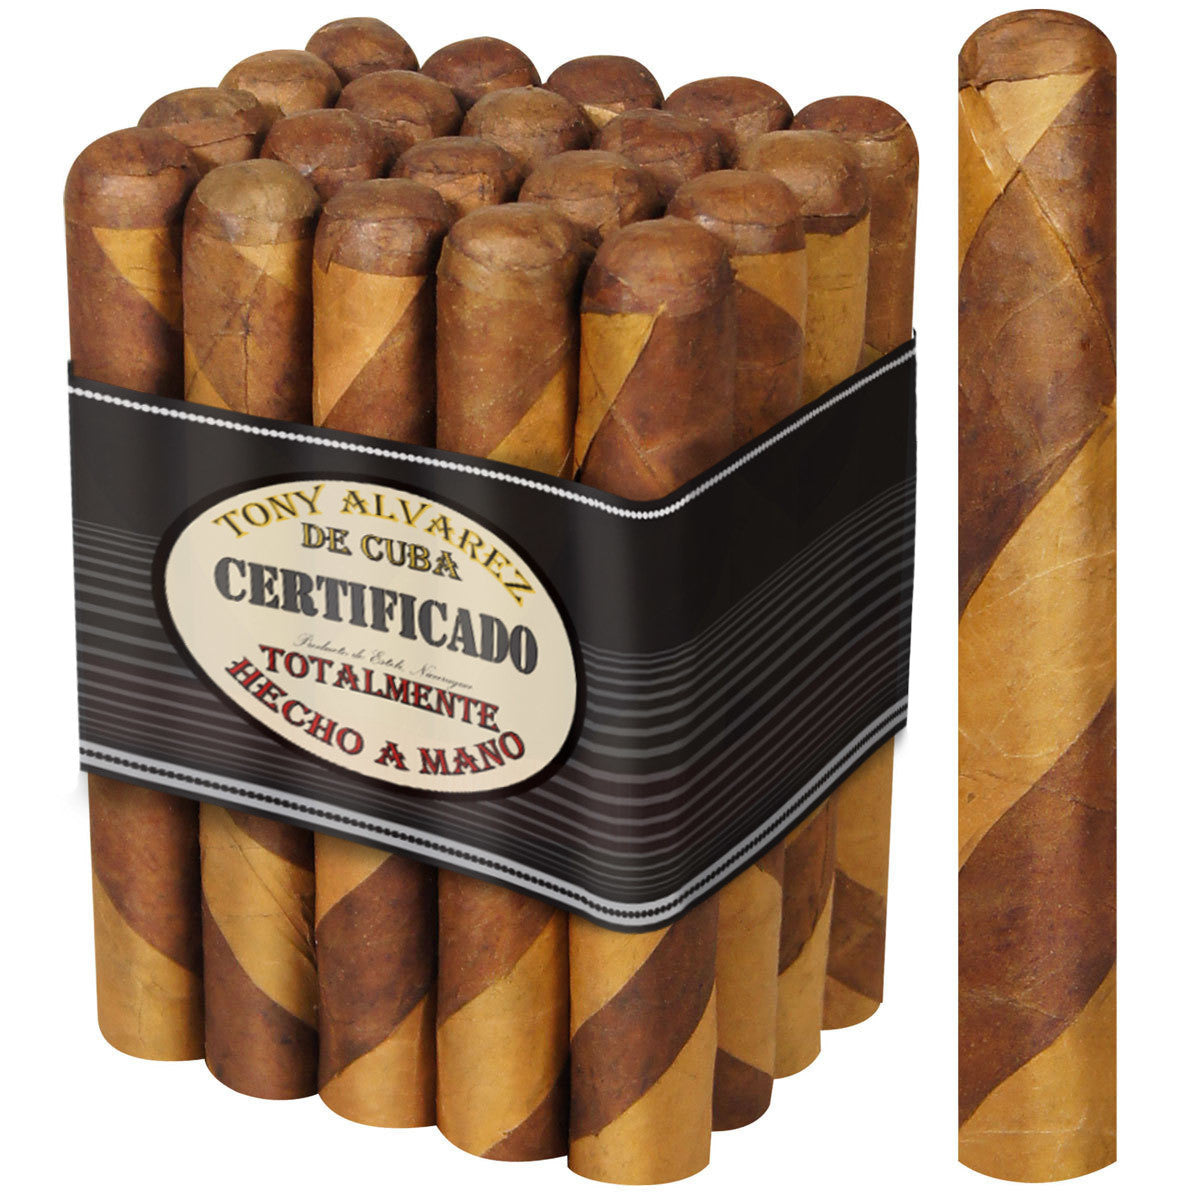 Tony Alvarez Barber Pole Cigar Bundles of 25